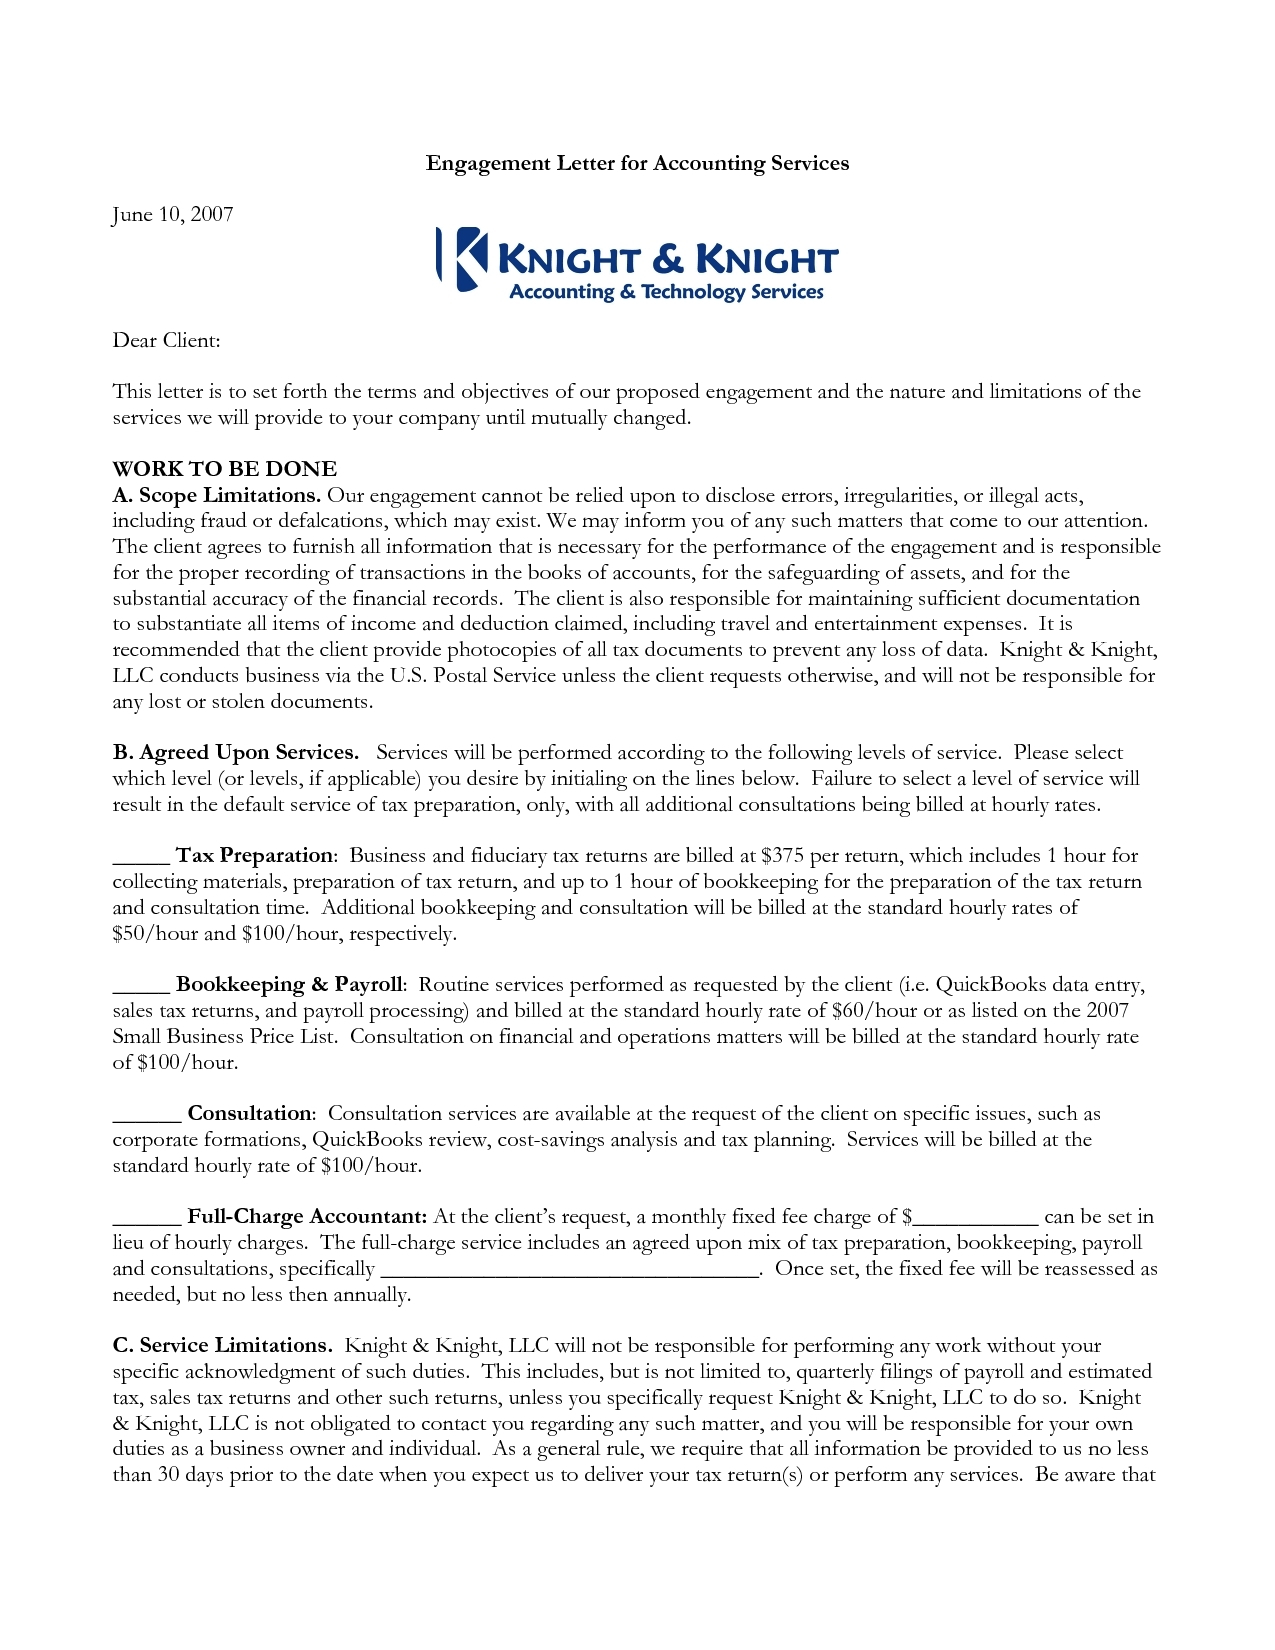 Sample Bookkeeping Engagement Letter The Best Letter Sample With For Bookkeeping Engagement Letter Example